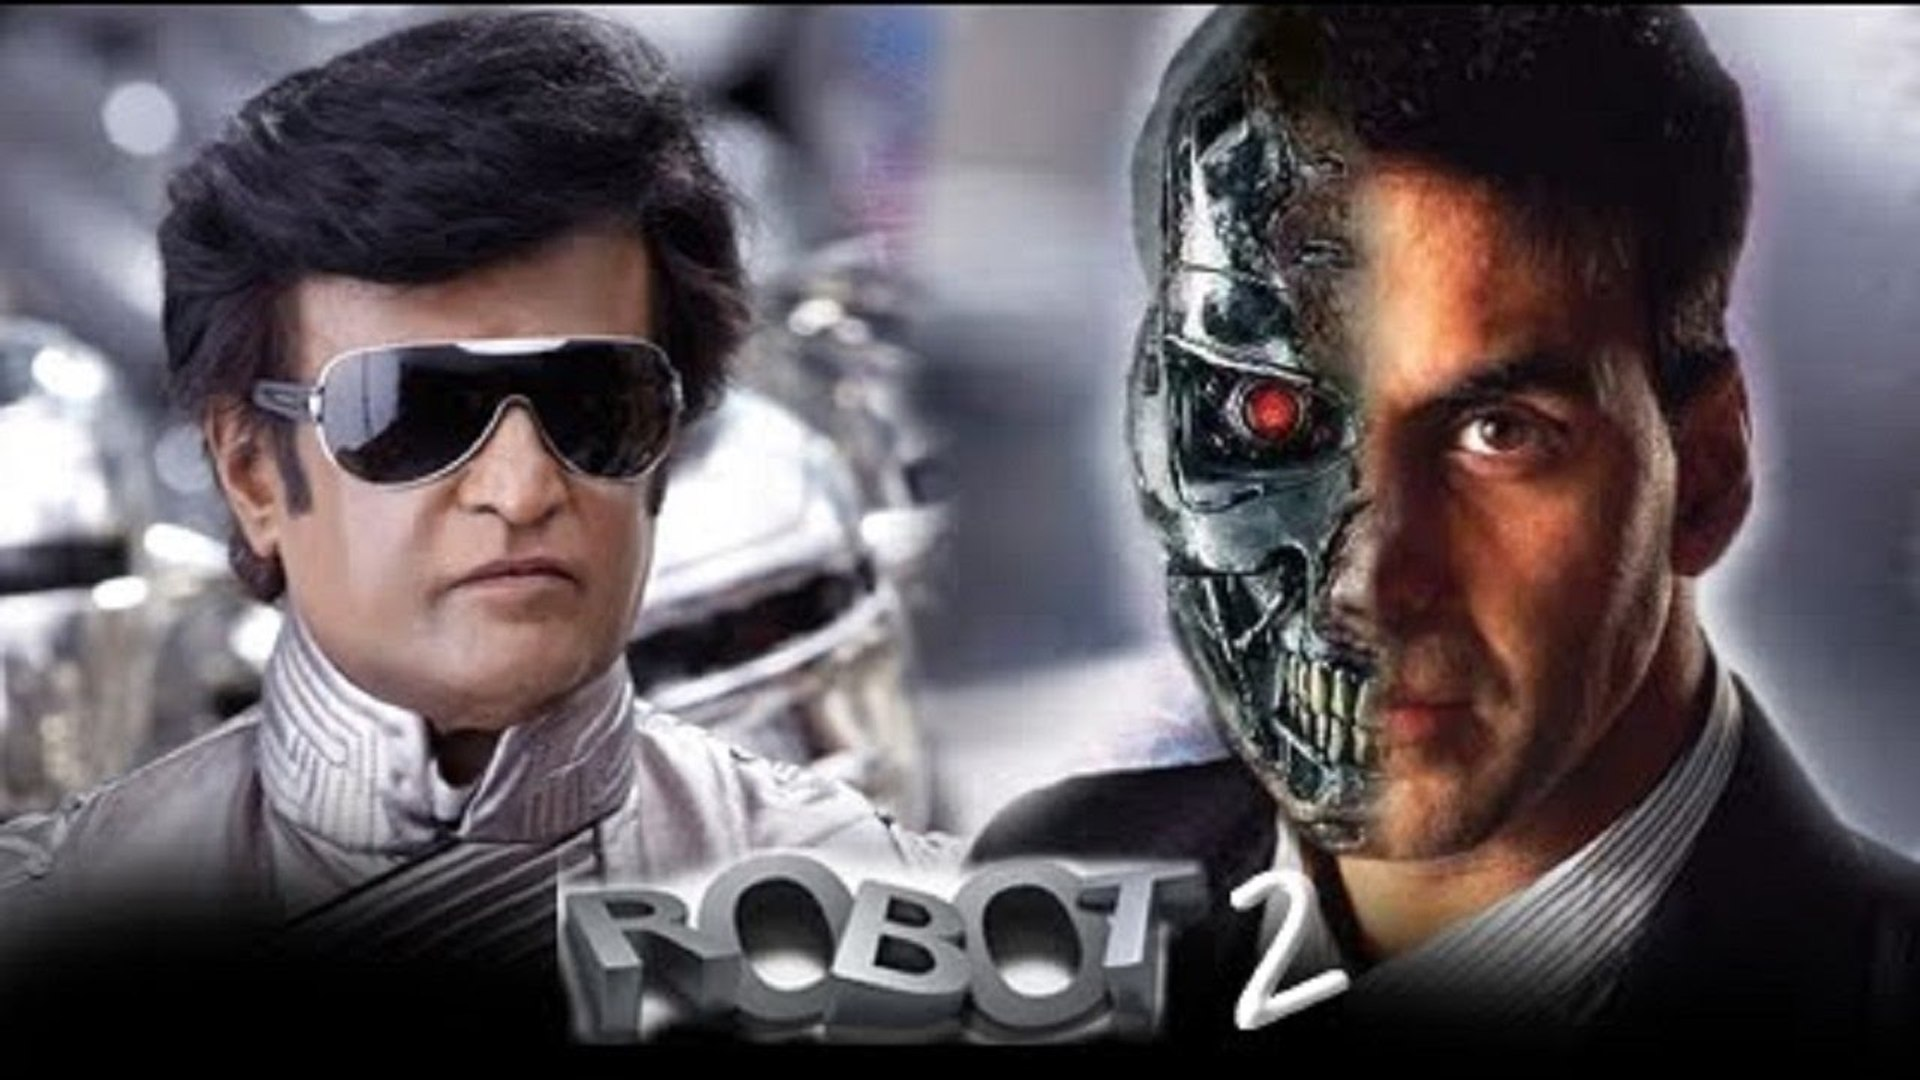 Robot 2 Trailer First Look | Rajnikanth New Movie Akshay Kumar | Indian New Movie Trailers Fanmade |